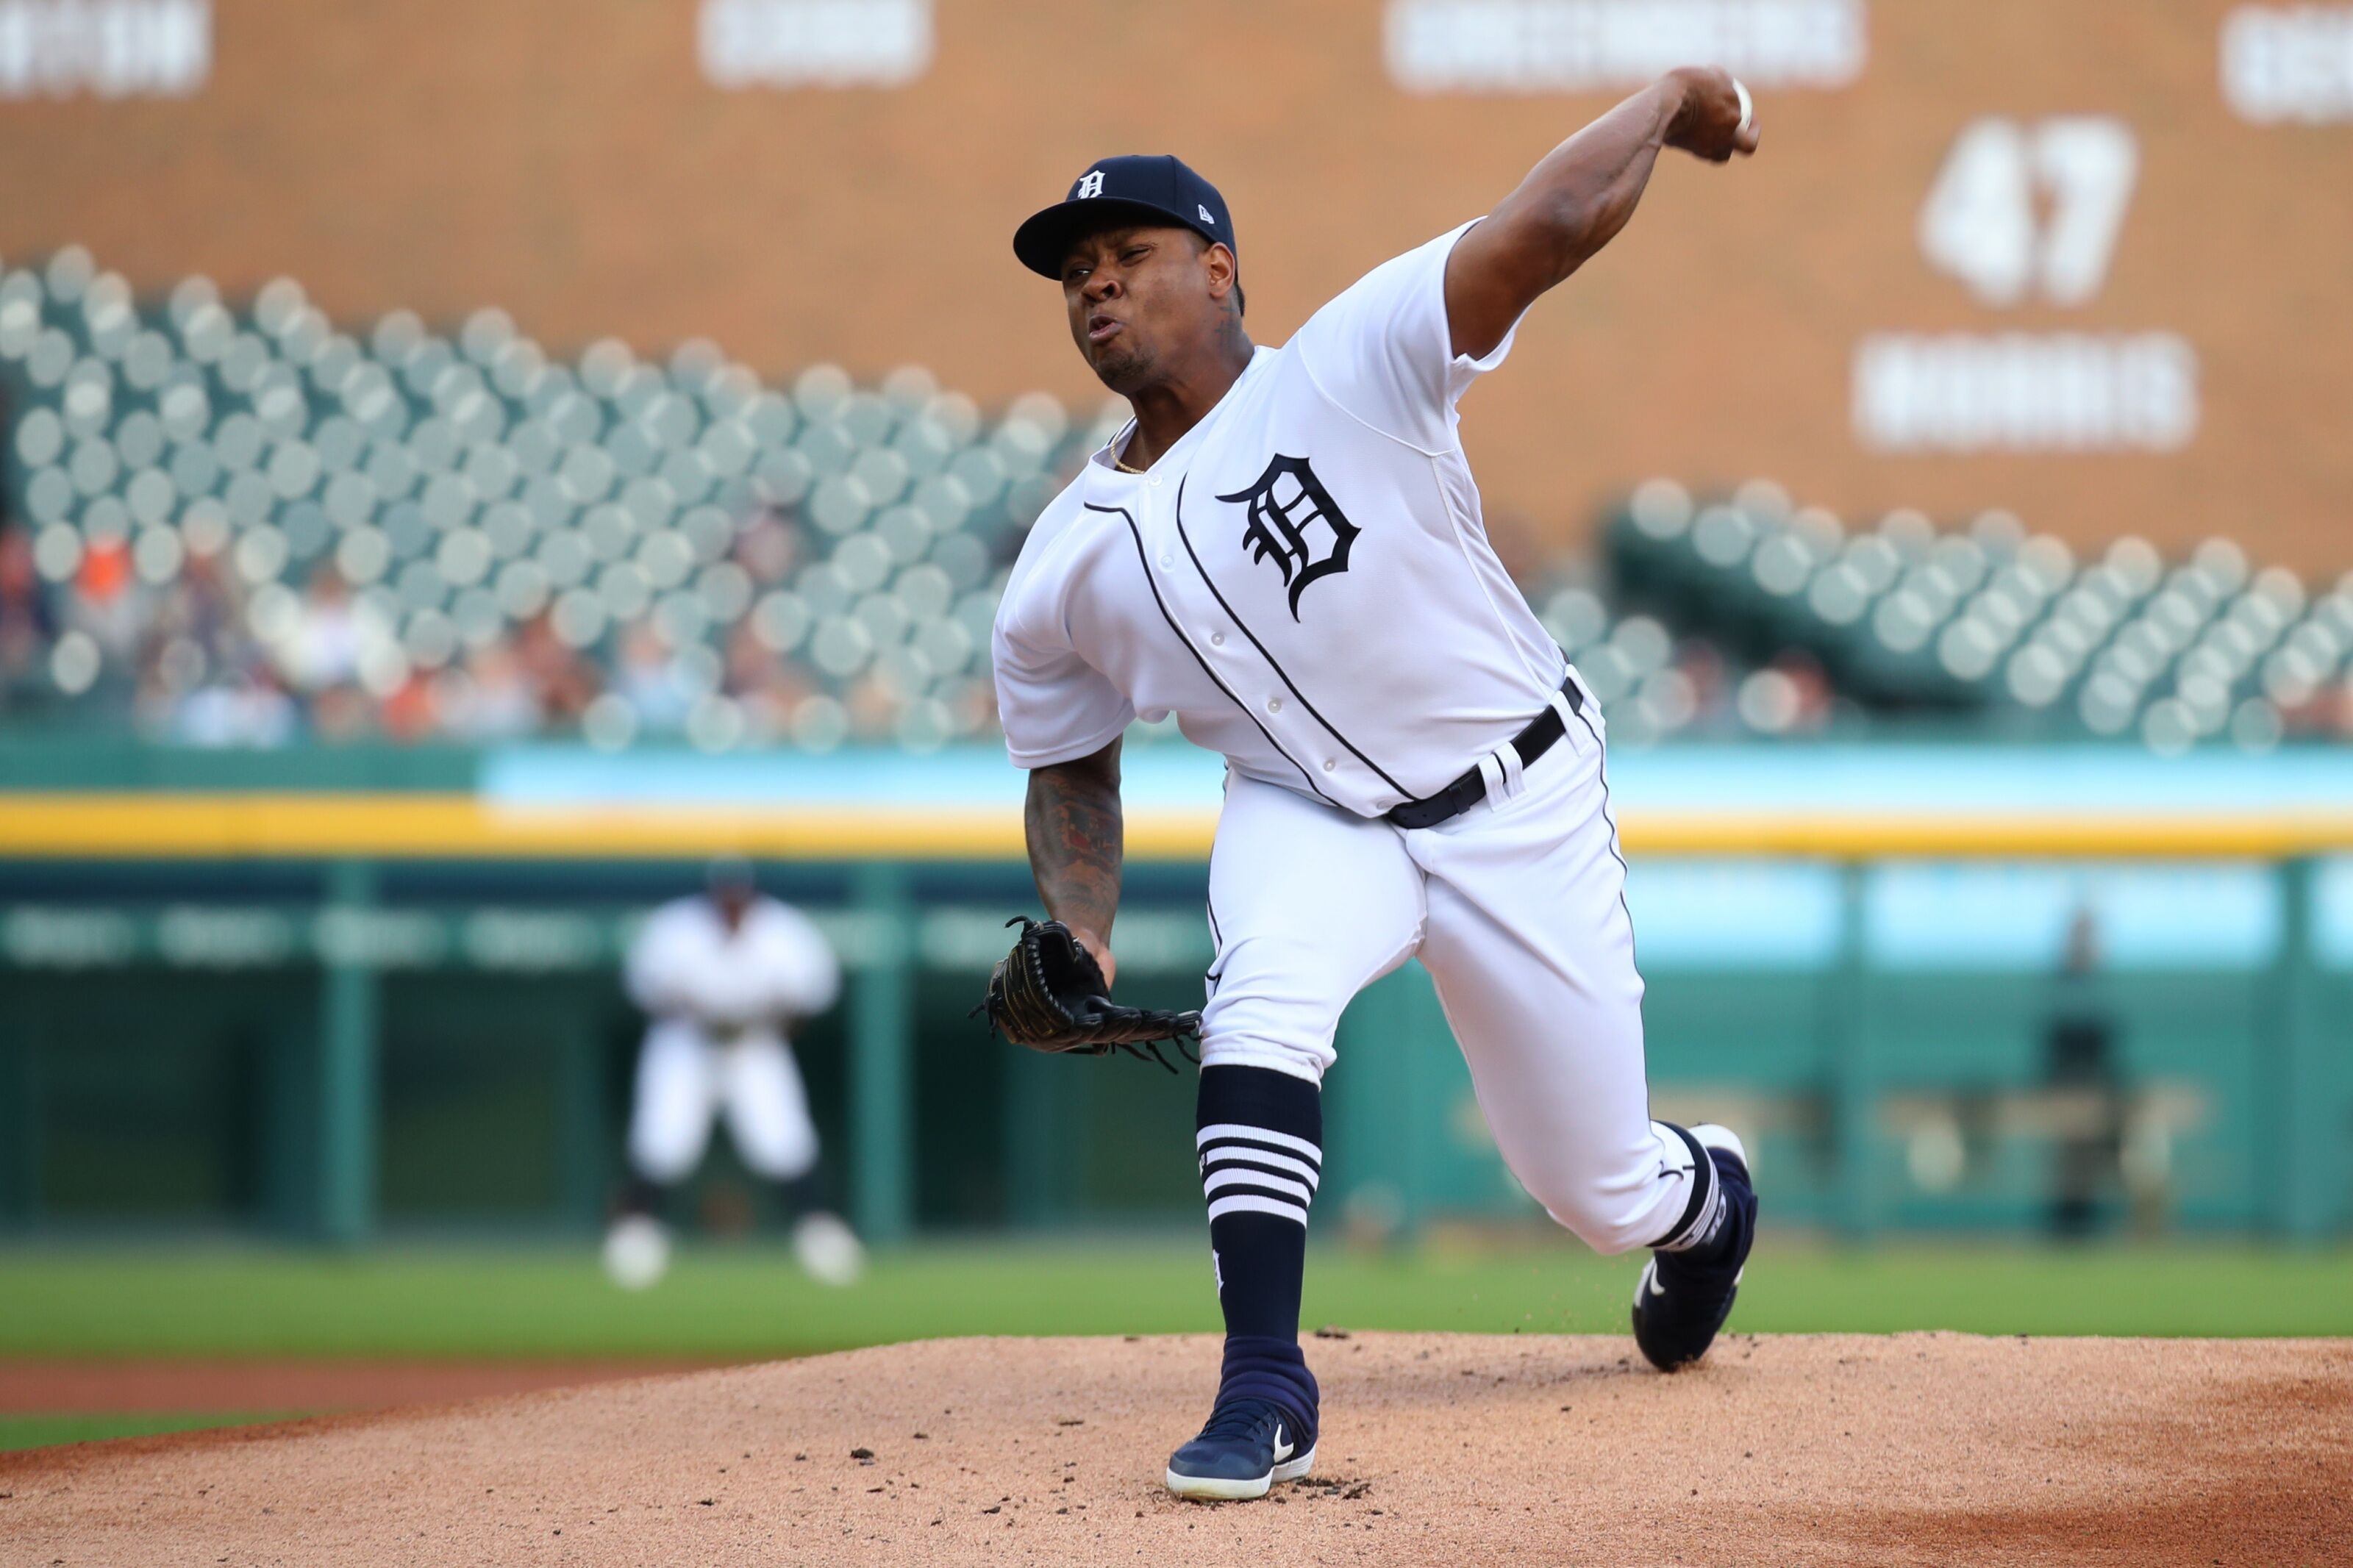 Detroit Tigers: Soto to start Saturday, Greiner placed on IL